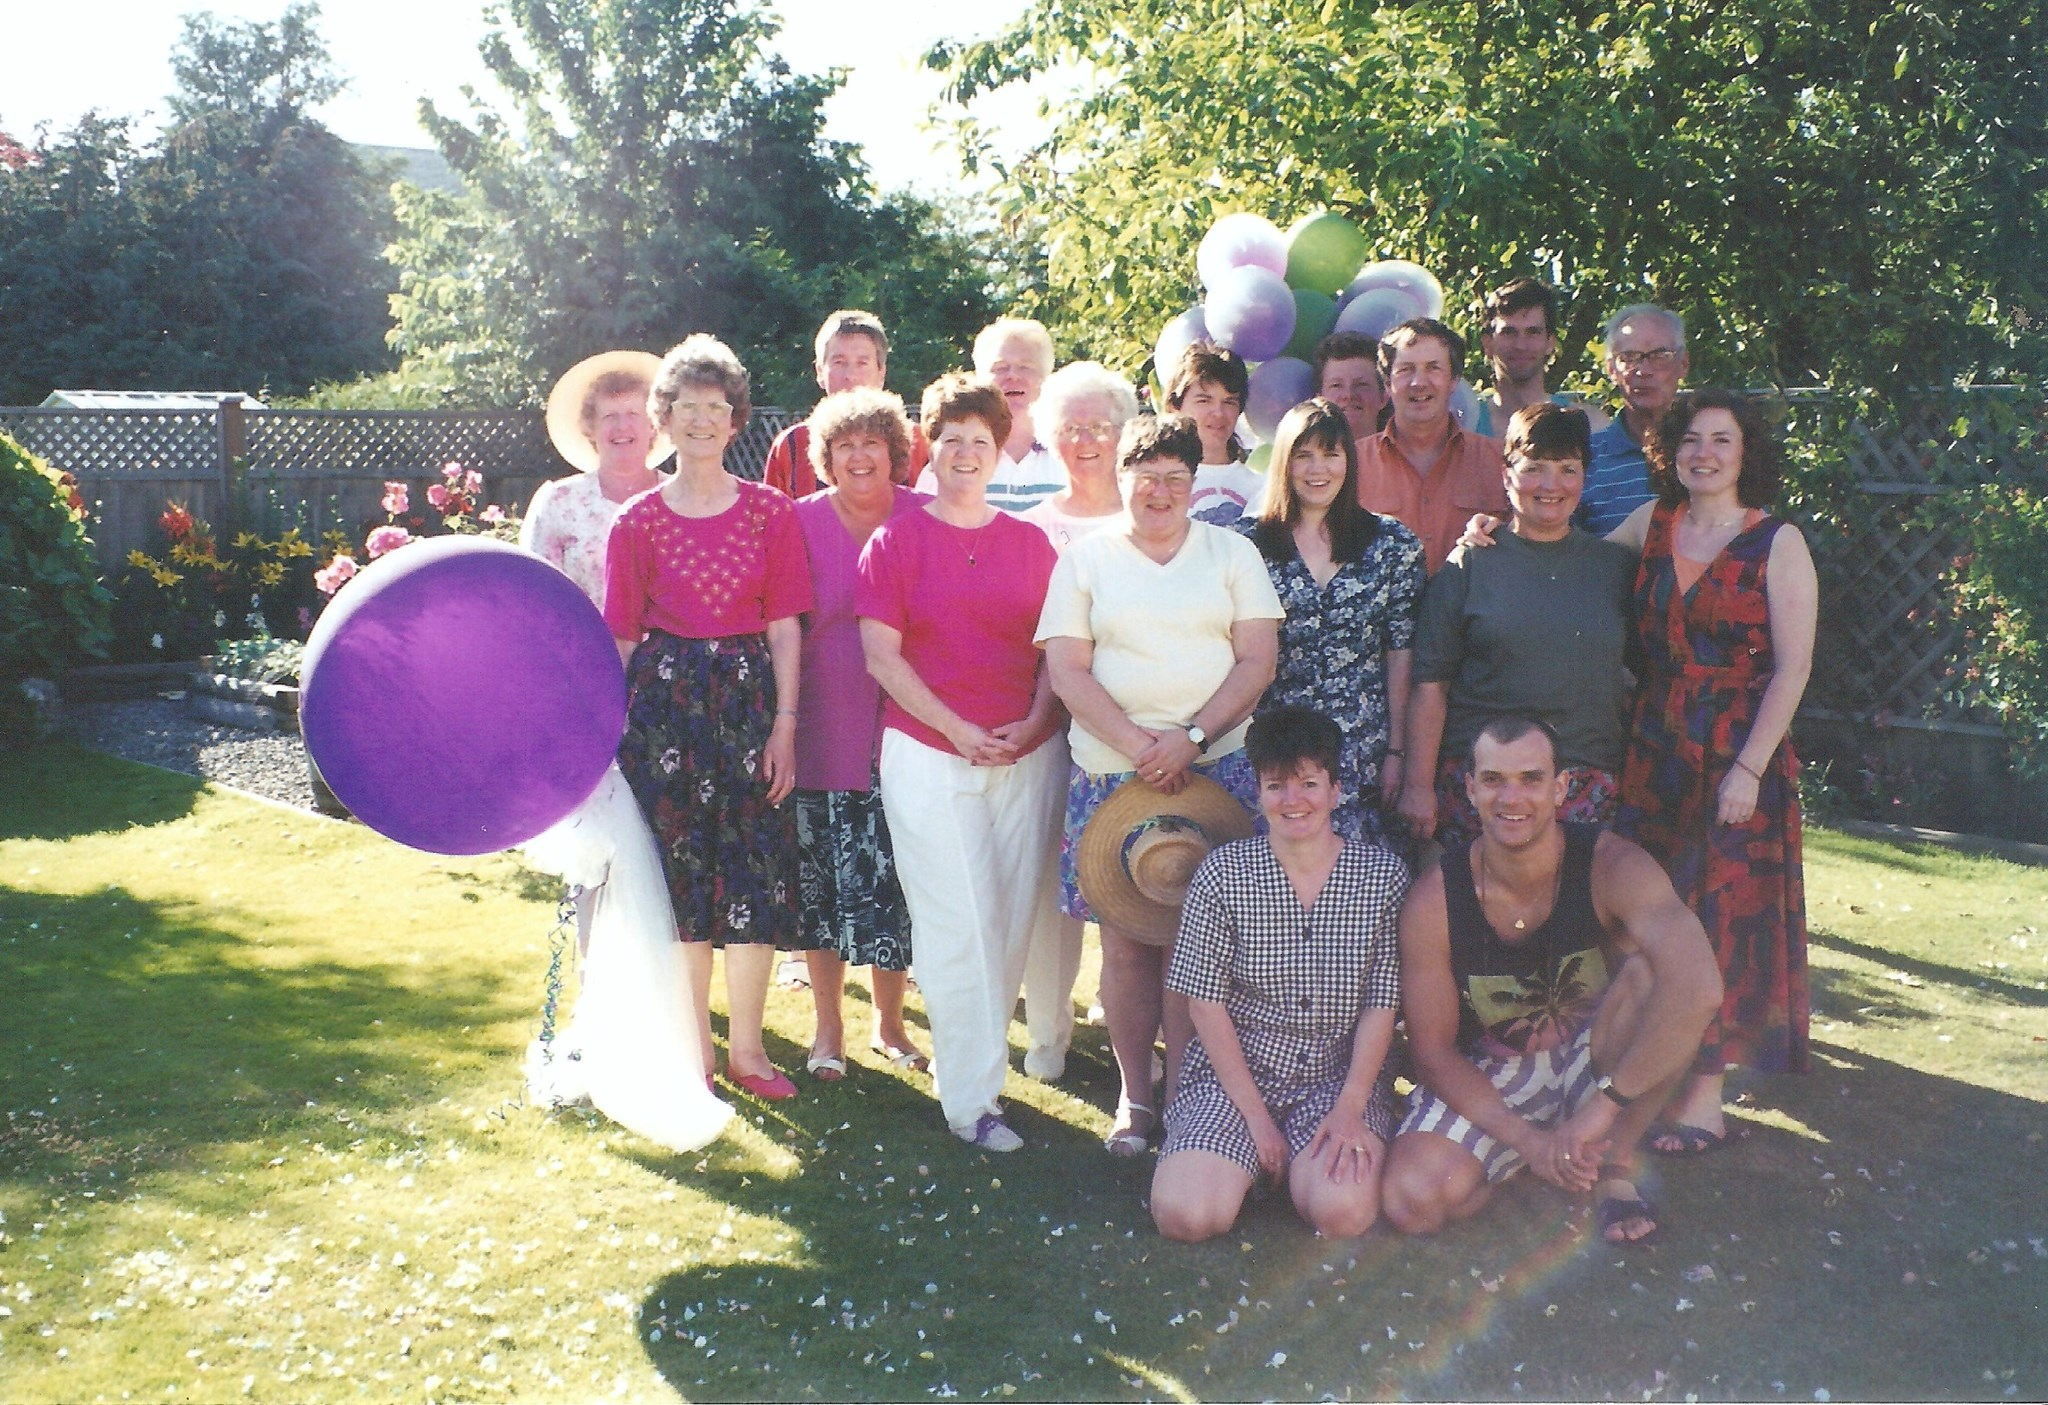 Bev and Paul's Wedding 1994